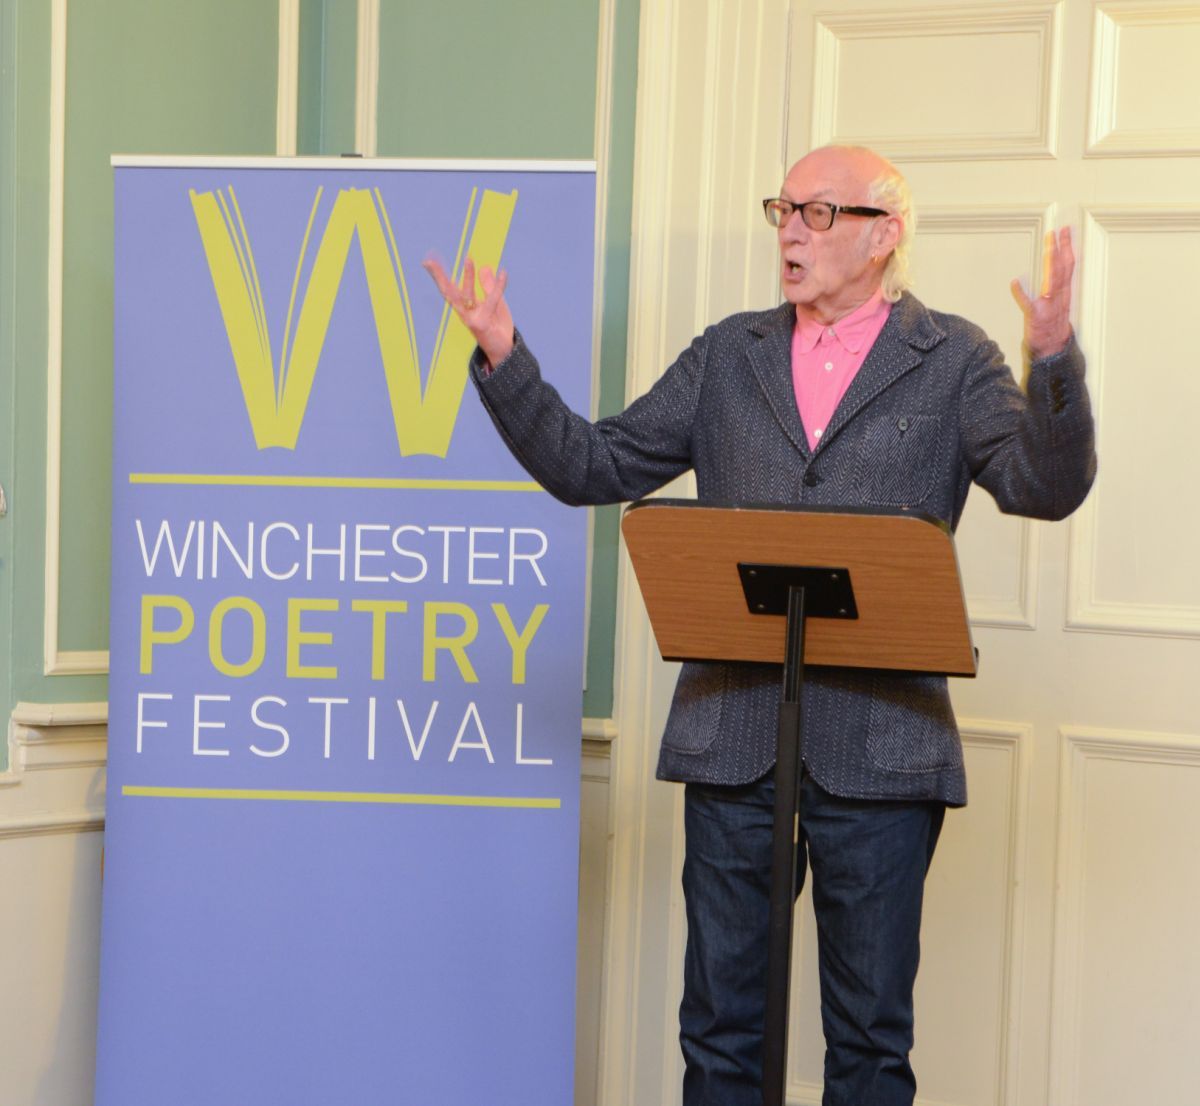 Friends of Winchester Poetry Festival launched last night